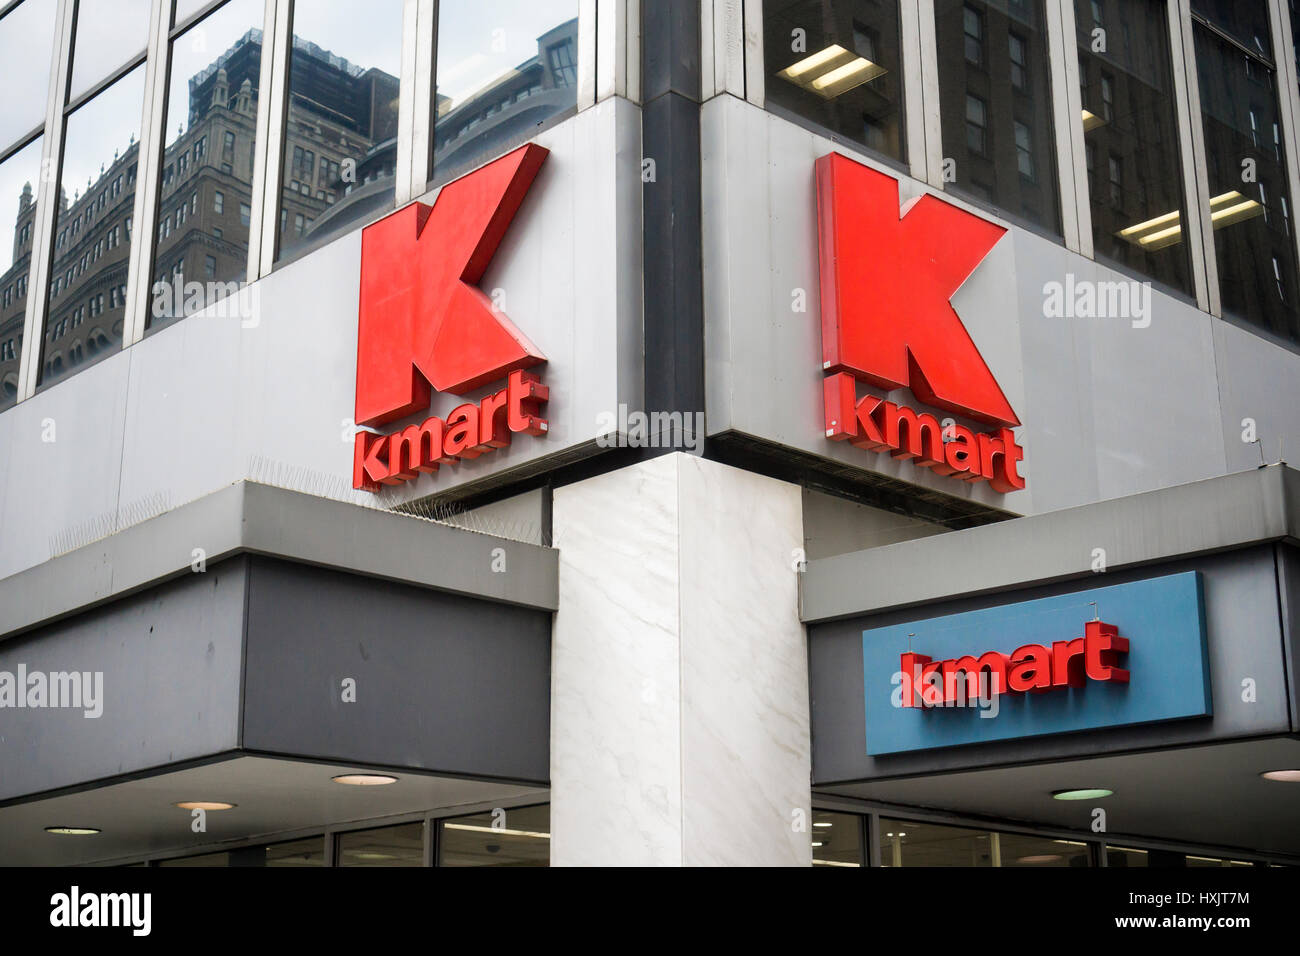 A KMart store in New York on Friday, March 24, 2017. The embattled Sears Holdings, the owner of KMart and Sears, Stock Photo